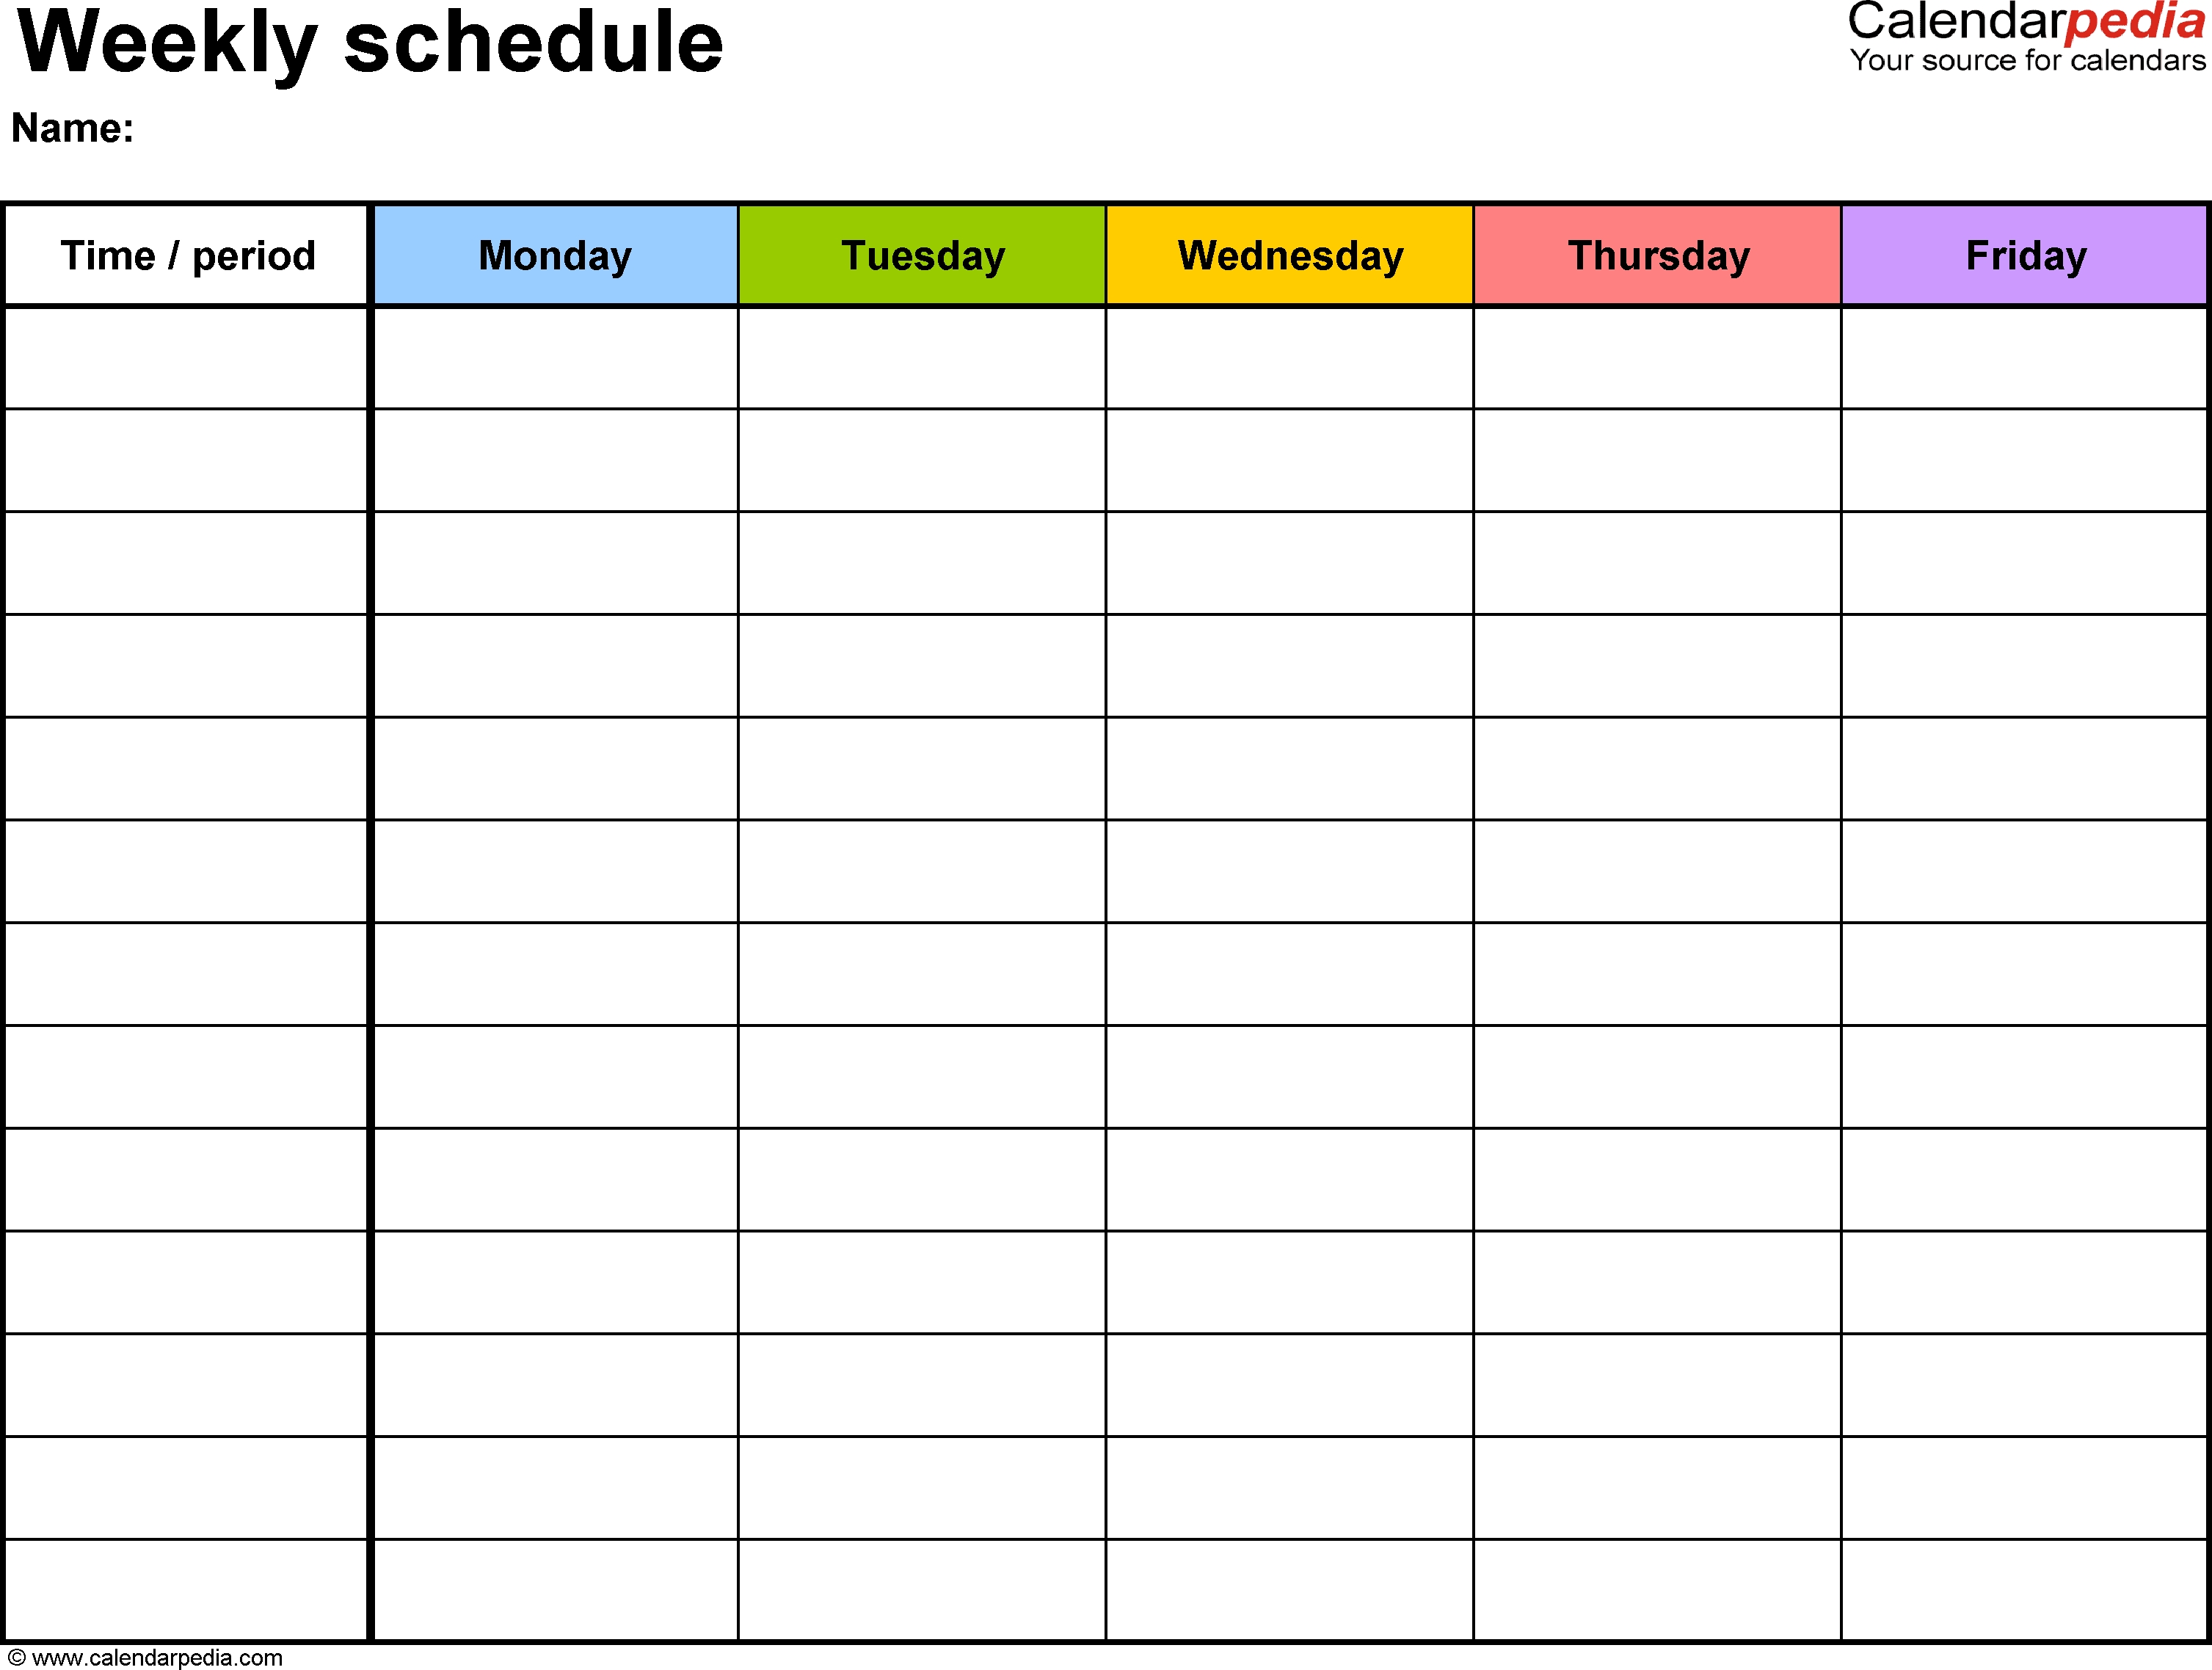 Weekly Schedule Template For Word Version 1: Landscape, 1 Page_Countdown Calendar Template Word